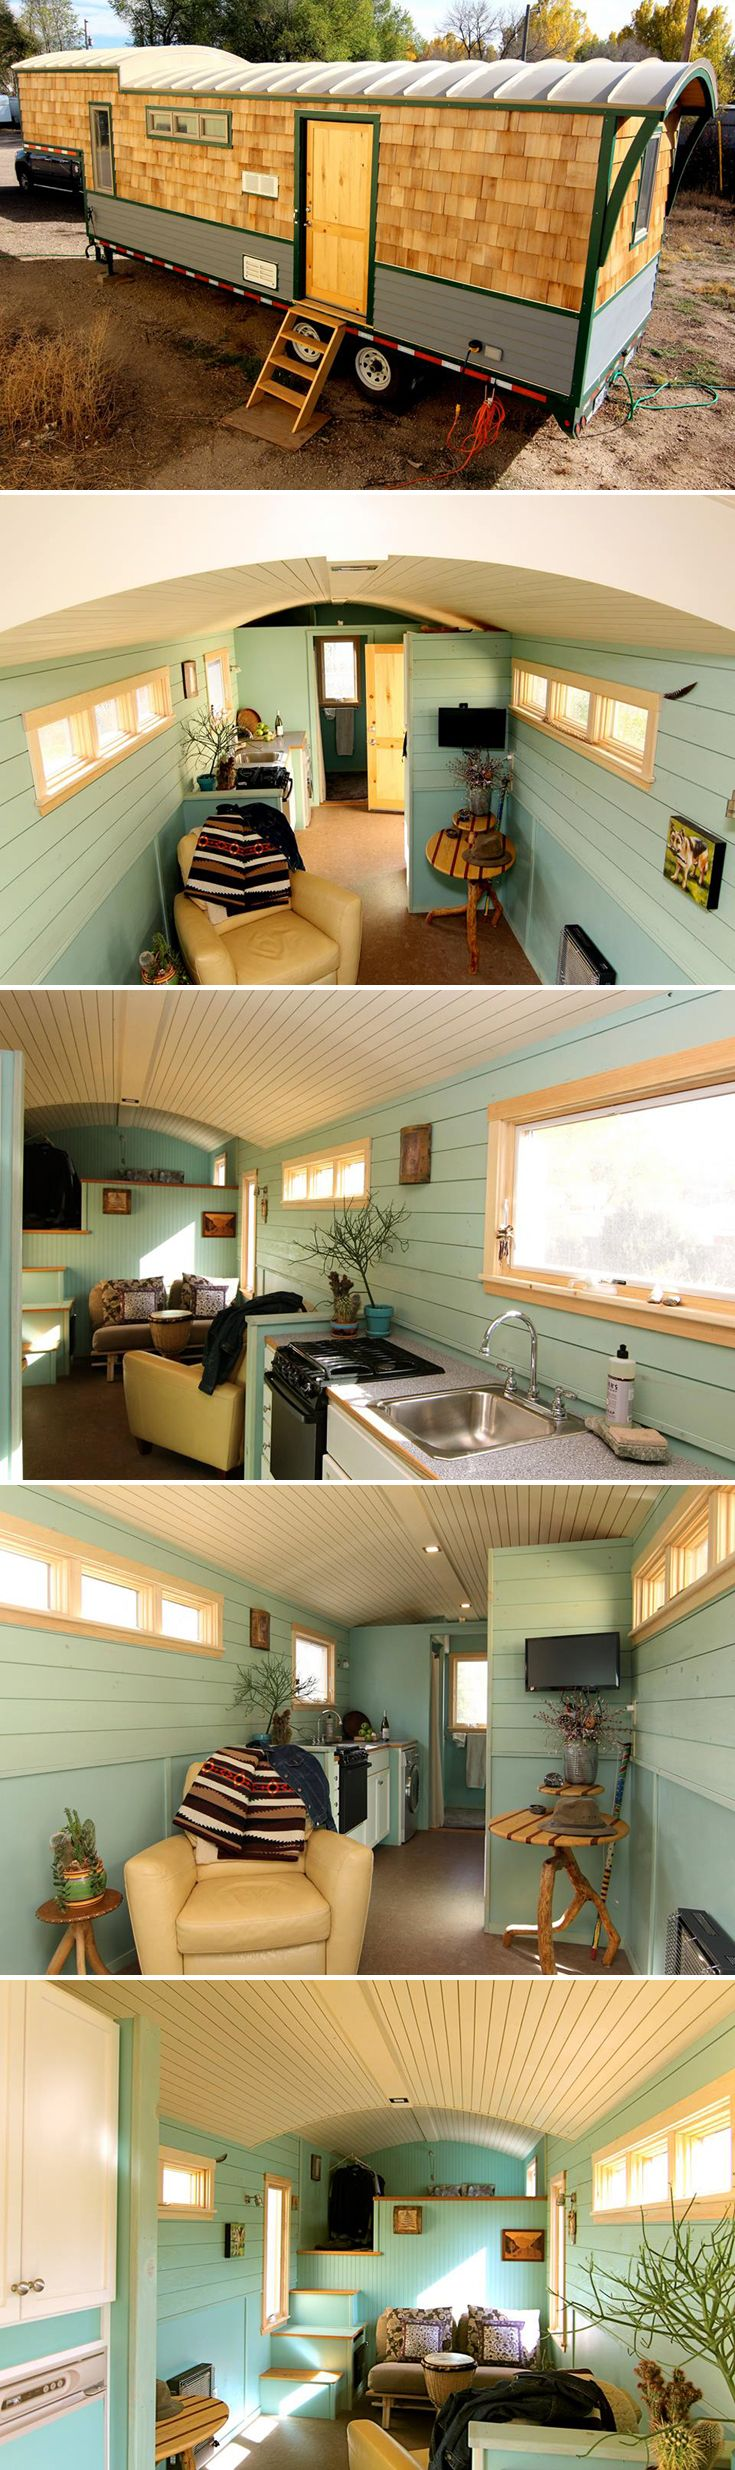 Fifth Wheel Tiny Home By Ken Leigh Sheds Barns Guest